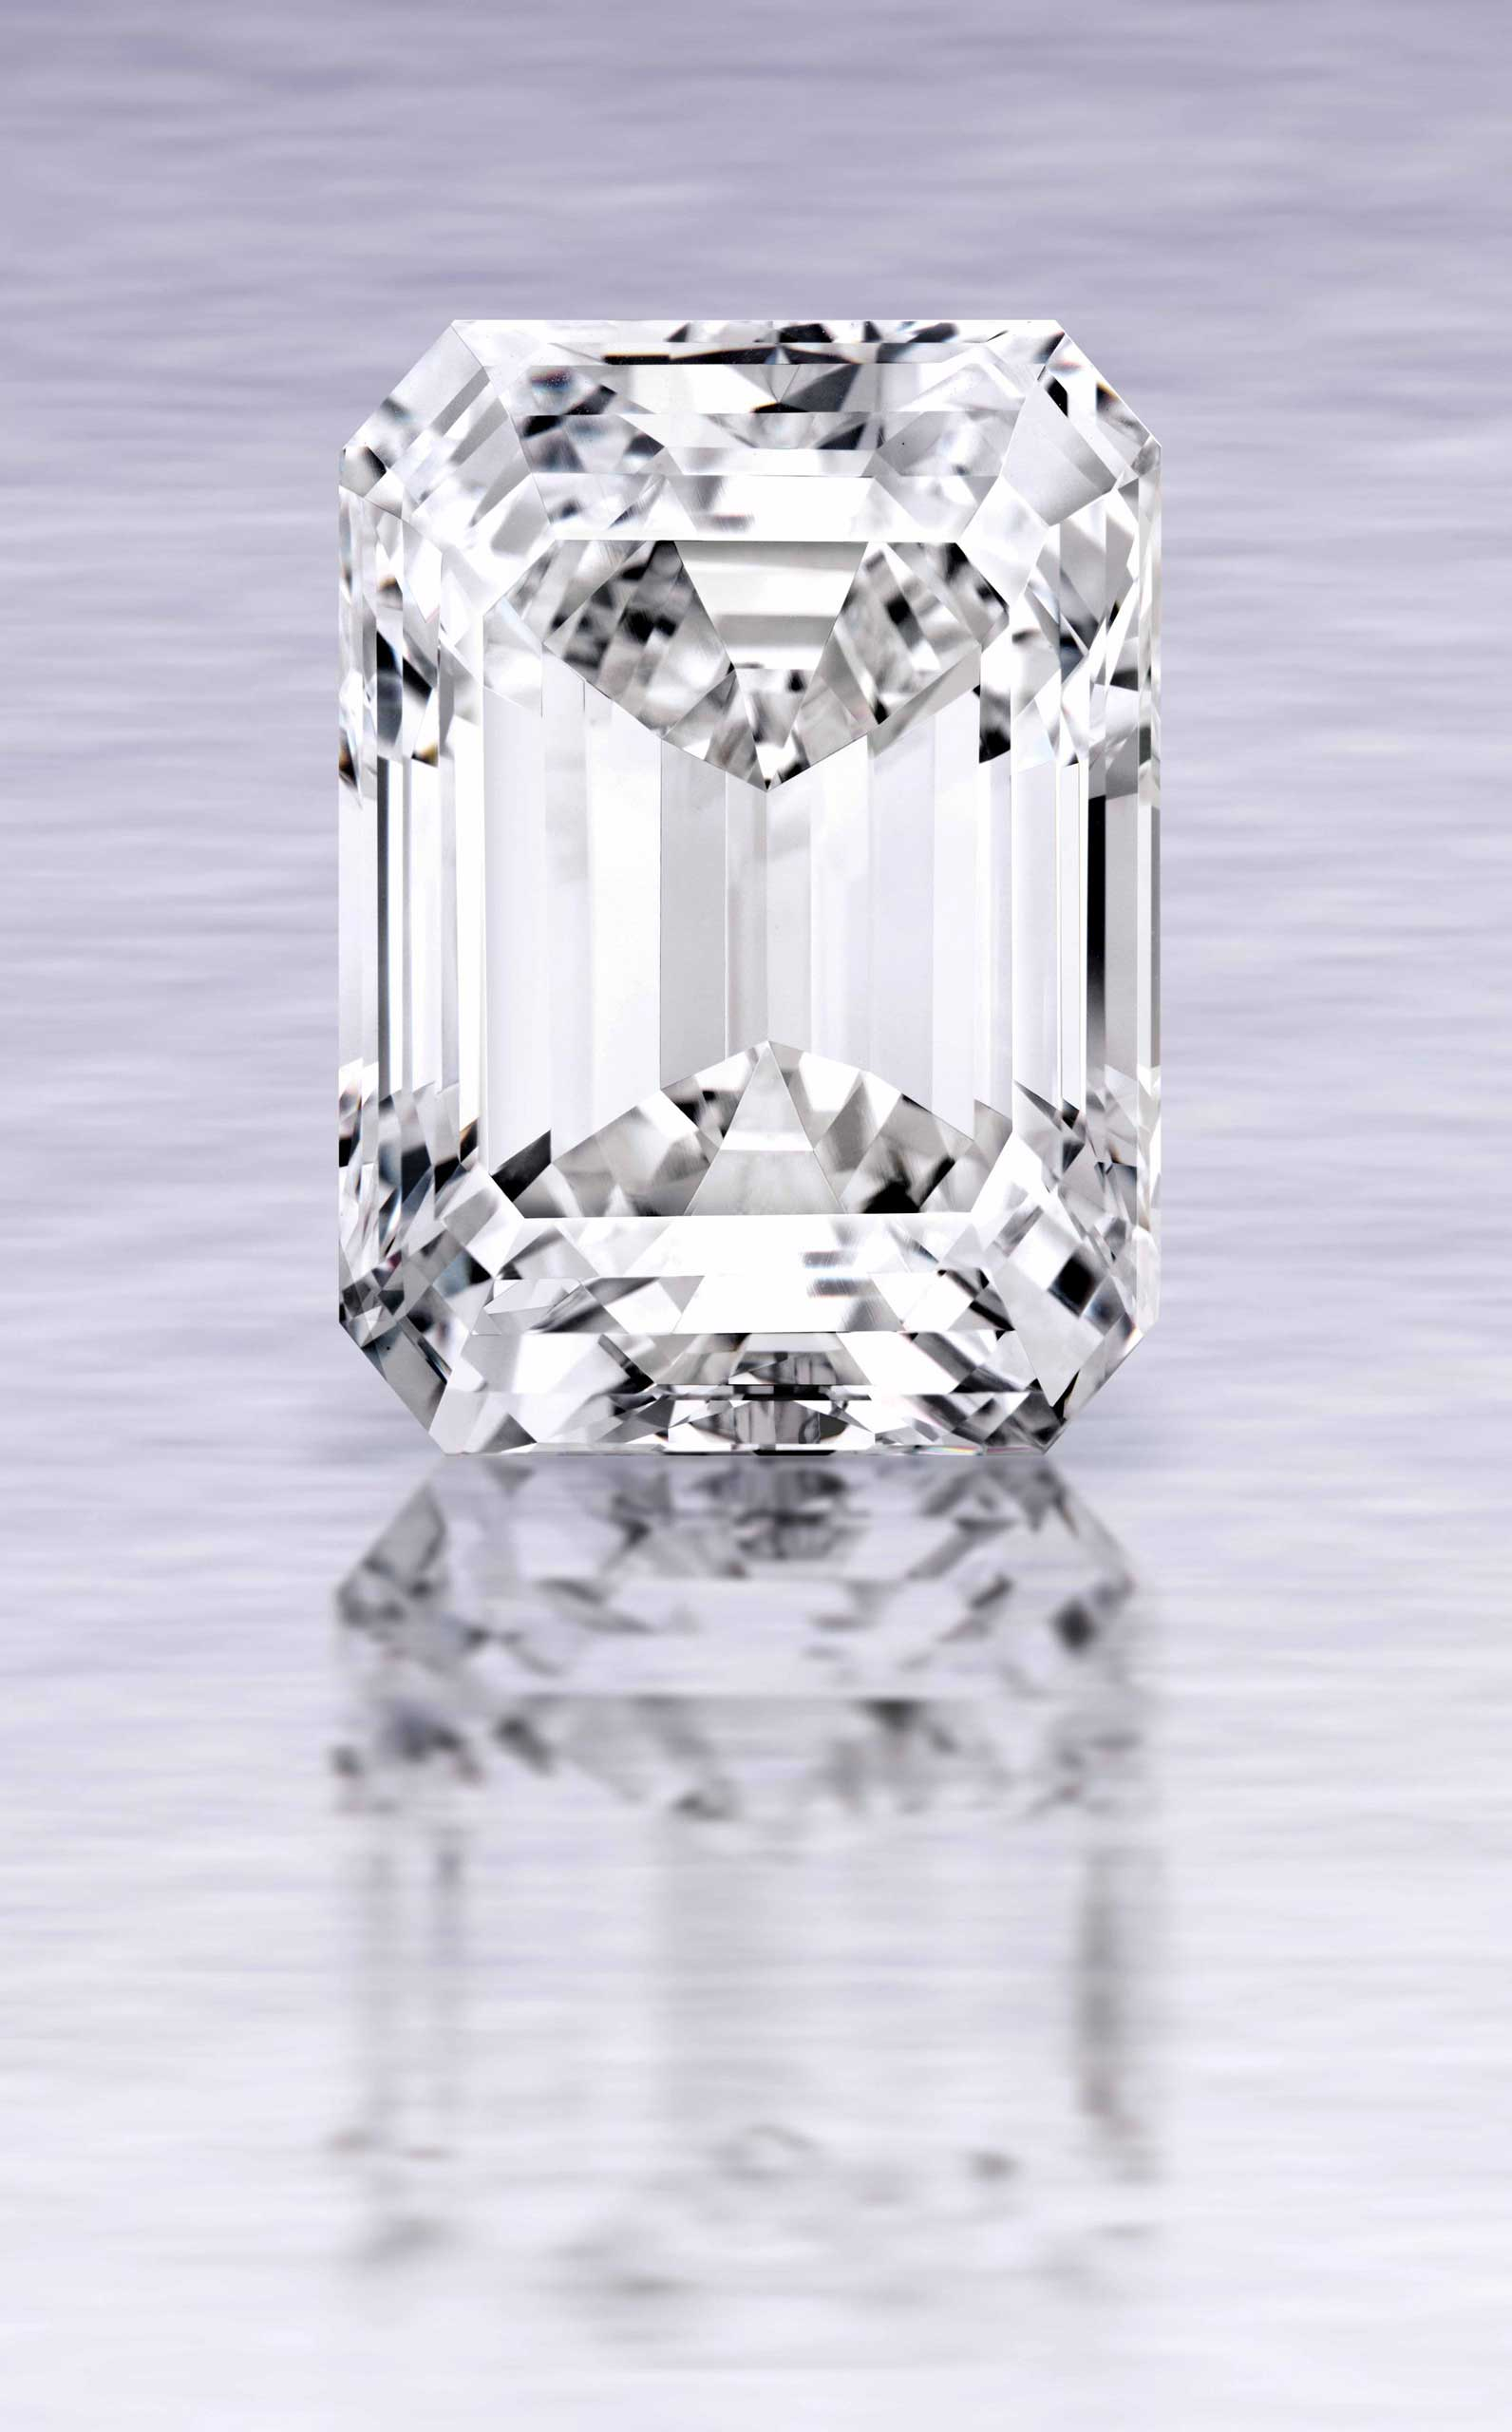 A 100-carat emerald-cut D color diamond, which was mined by De Beers in southern Africa.